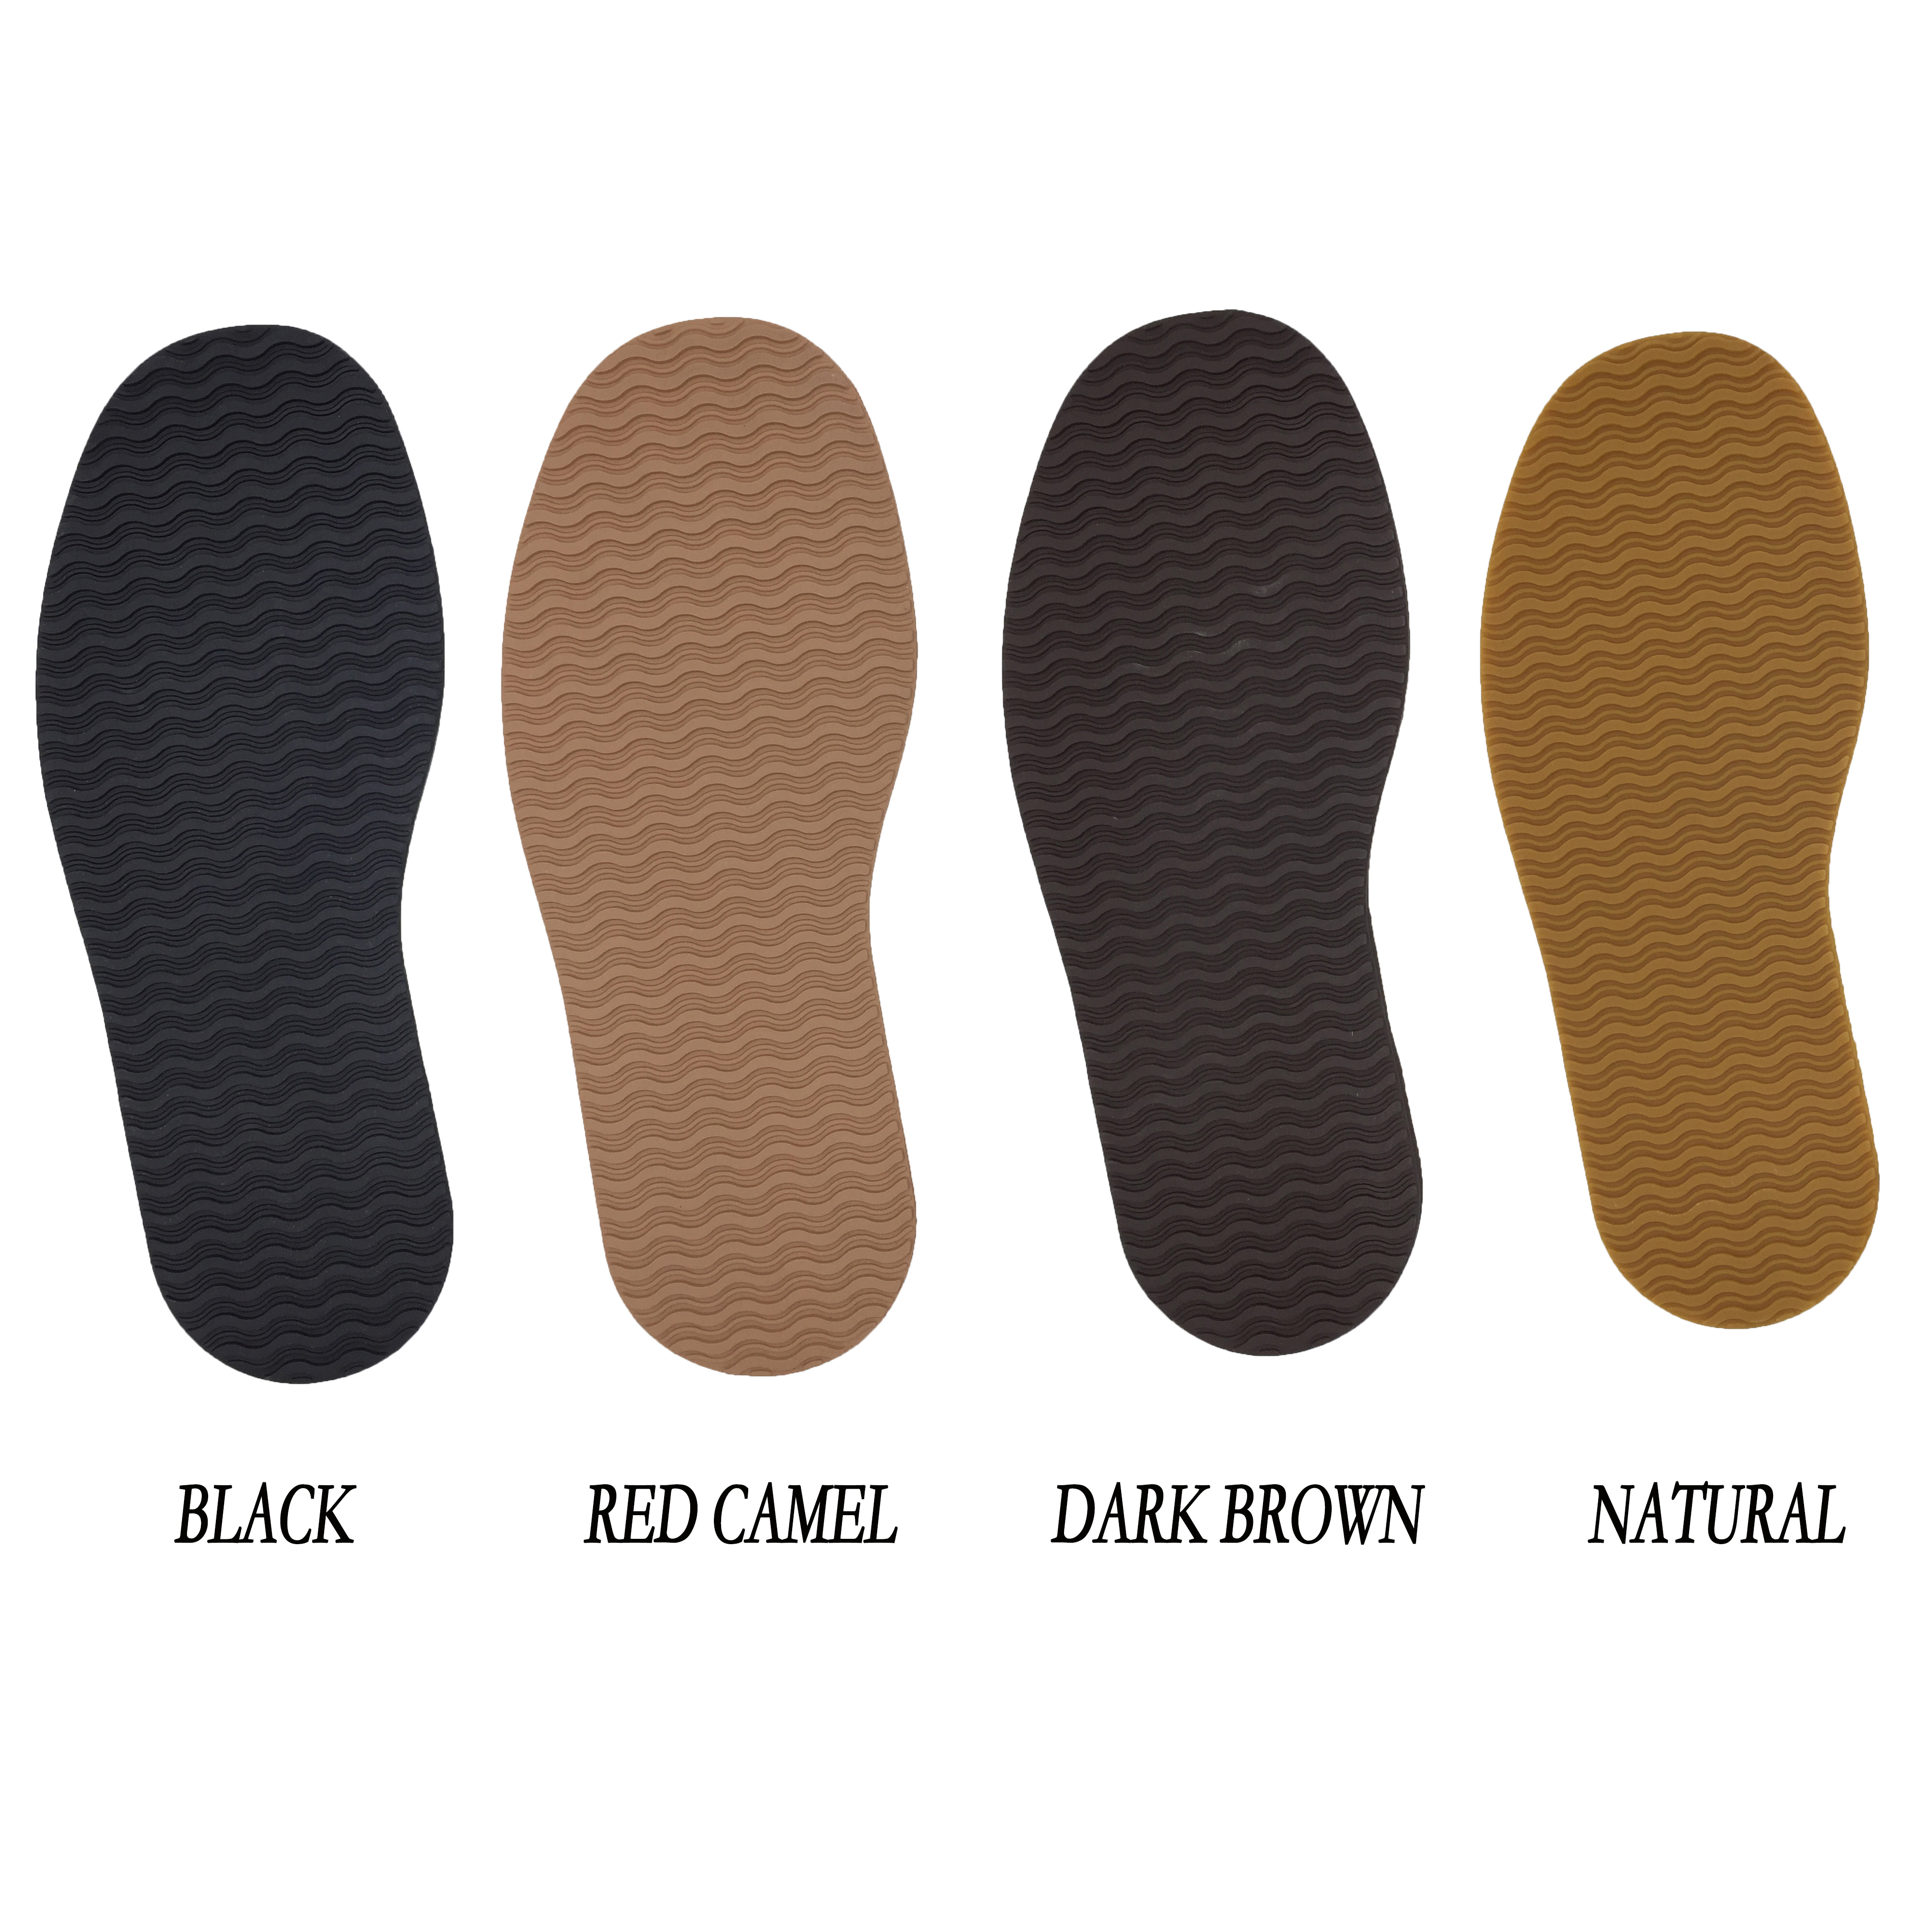 KANEIJI Rubber Full Sole Repair Shoes , Tire Grain Pattern , The Wave Pattern, Repair Worker Shoes Outsole,4mm Thicker